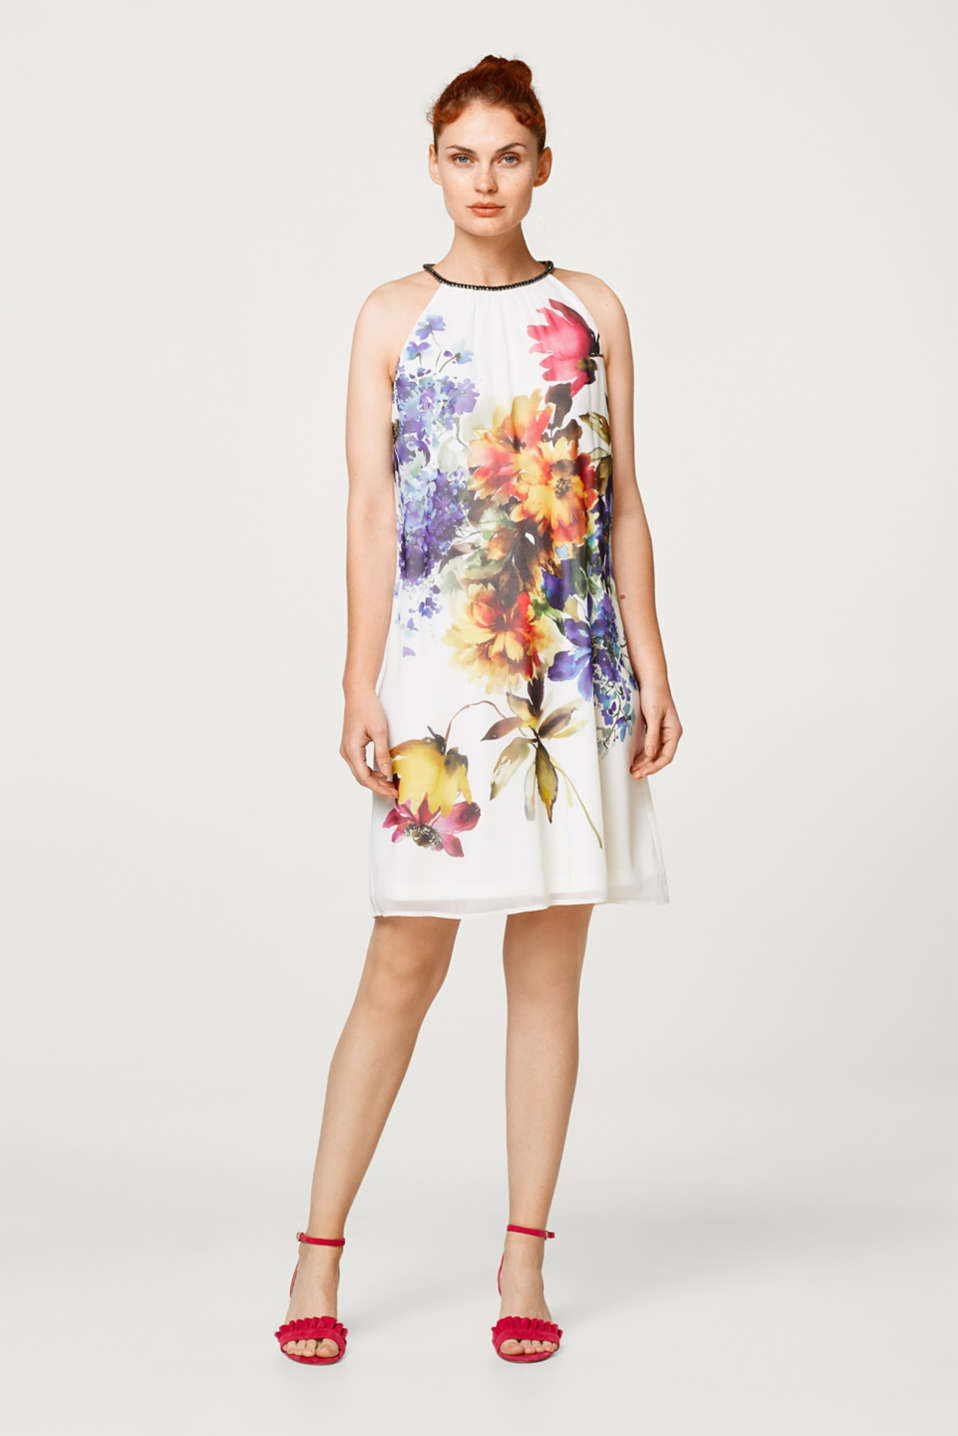 Esprit - Printed chiffon dress with rhinestones